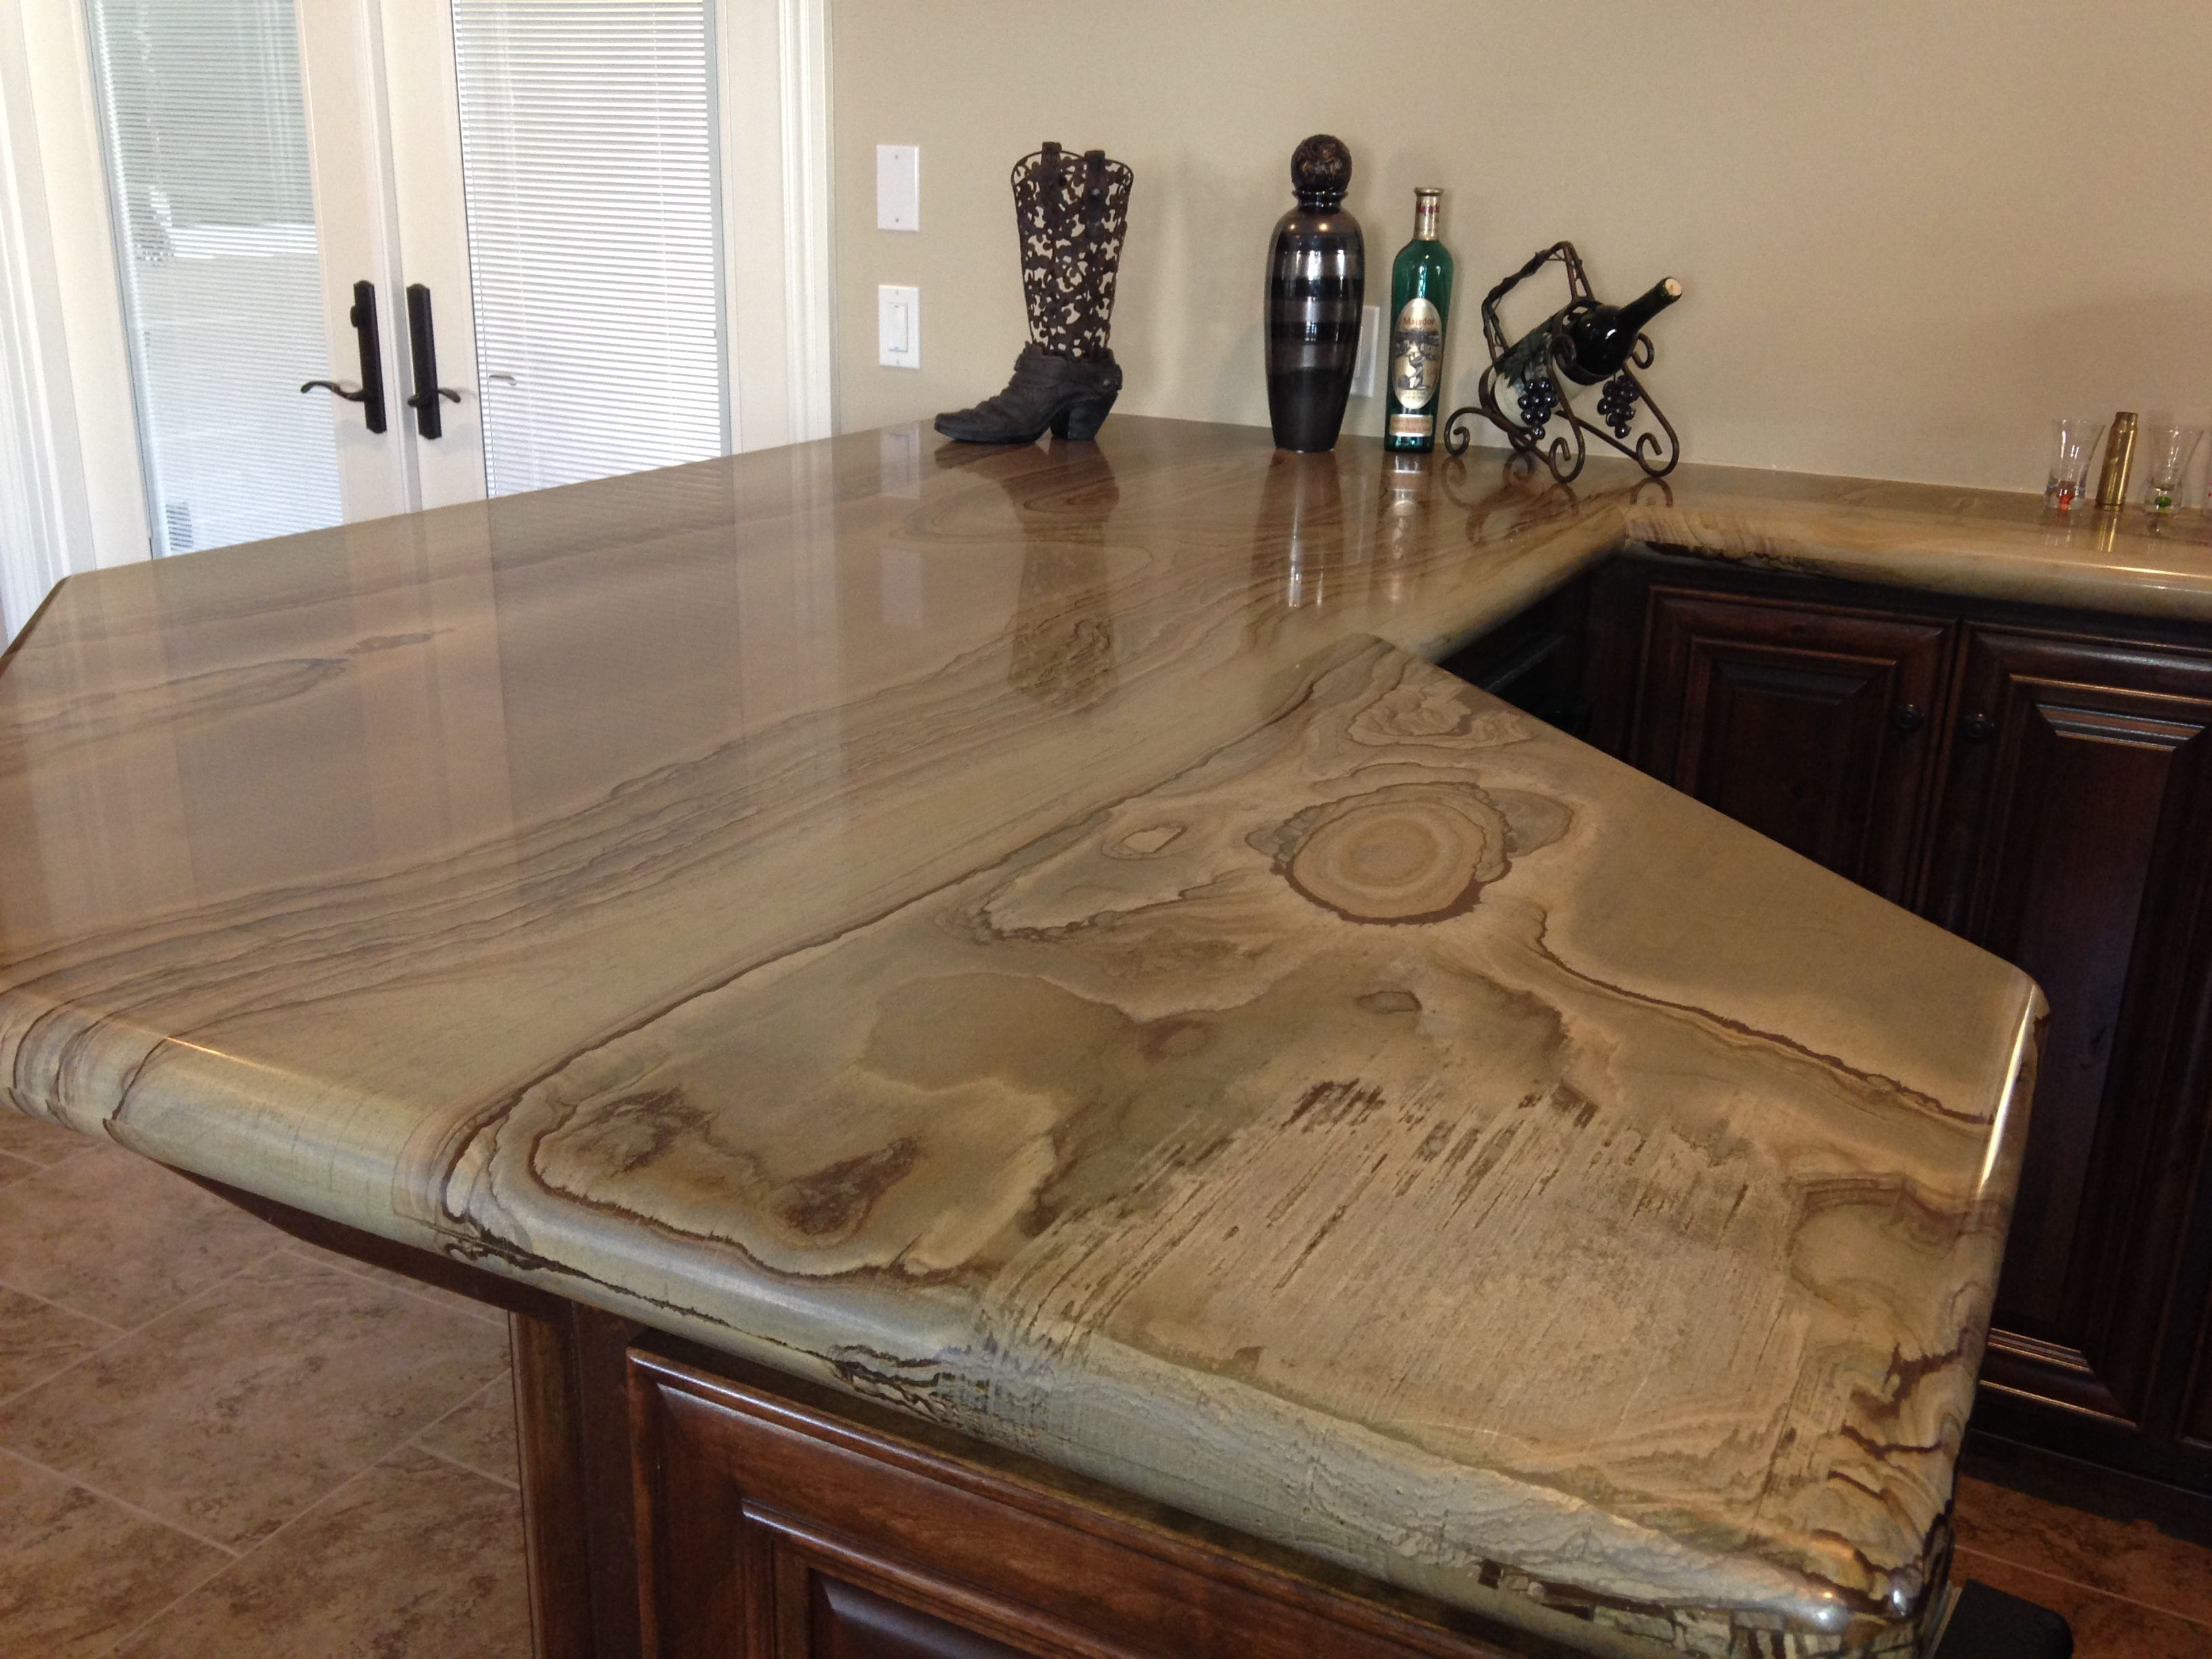 Very Cool Countertop Stone But Looks